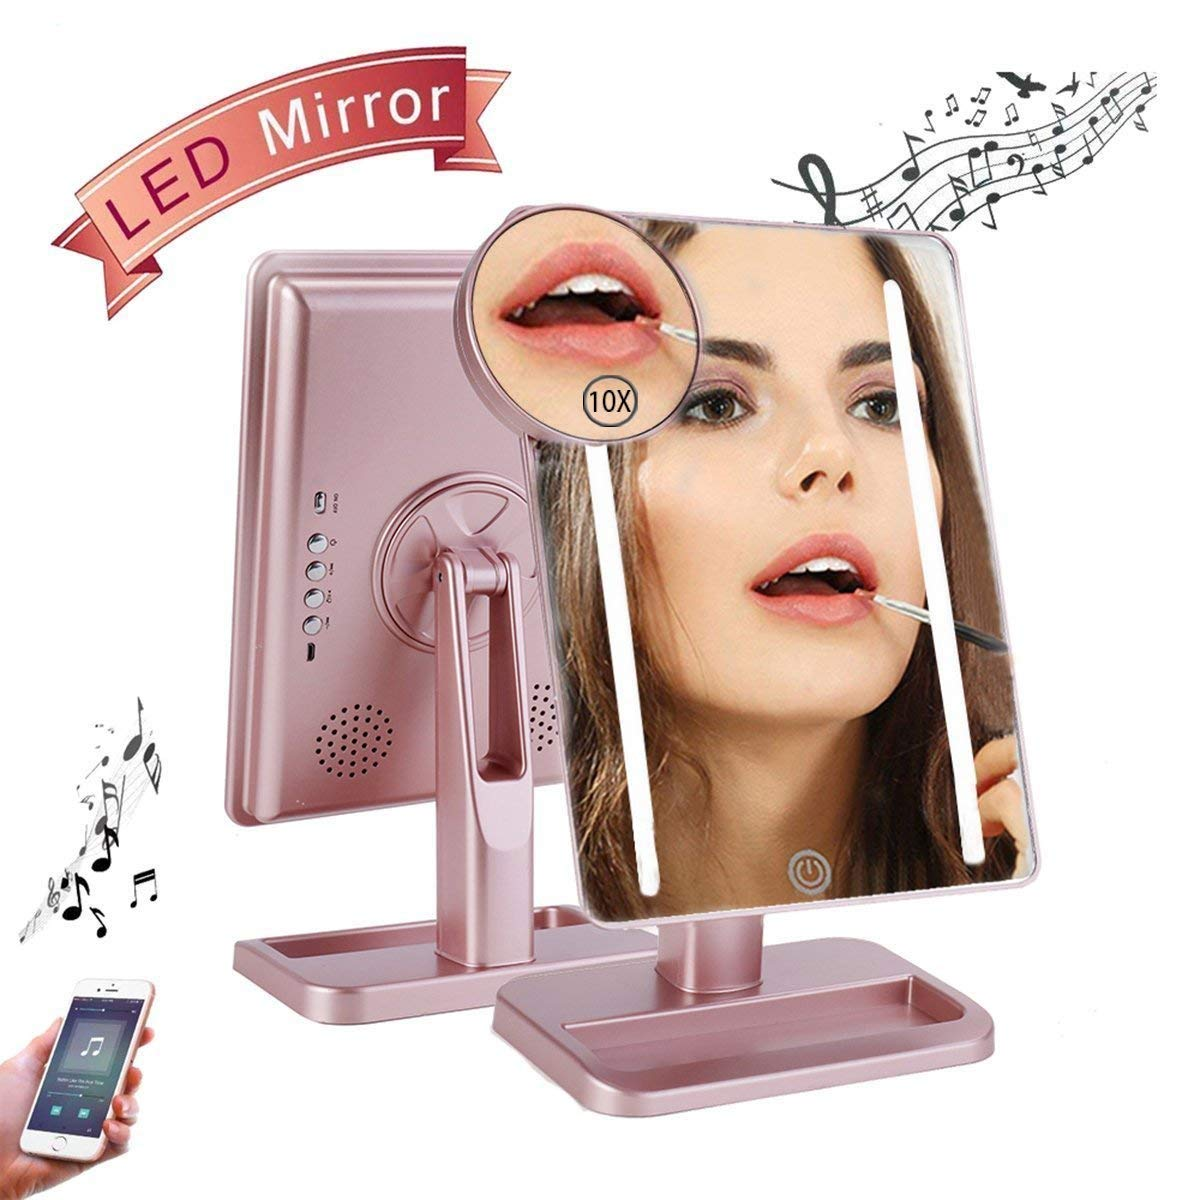 Hansong Makeup Mirror with Lights- Lighted Makeup Mirror,USB Chargeable,Wireless Audio Speakers,Detachable 10X Magnifying Mirror,180° Rotation Countertop Cosmetic Mirror(Rose Gold)